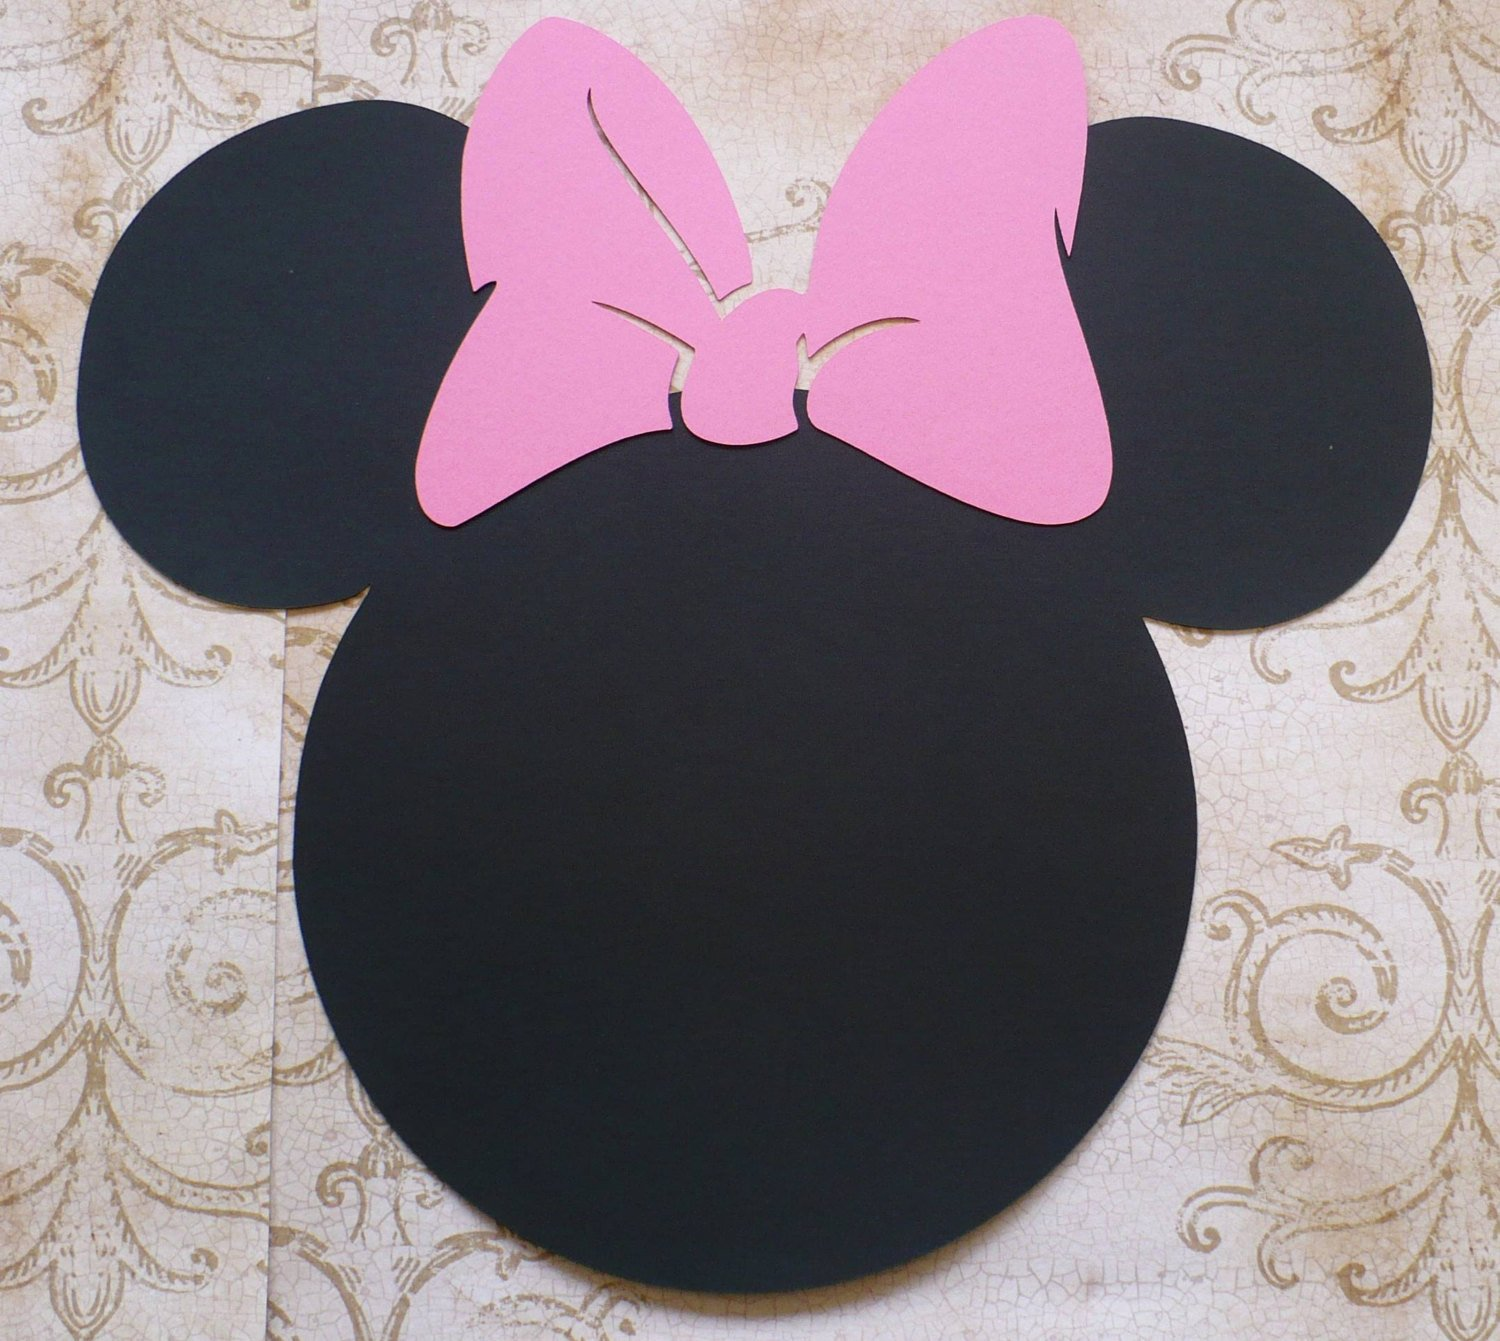 Minnie Mouse Cut Out Head Inspirational 2 Xl Minnie Mouse Head Shapes Medium Pink Bows Die Cut for